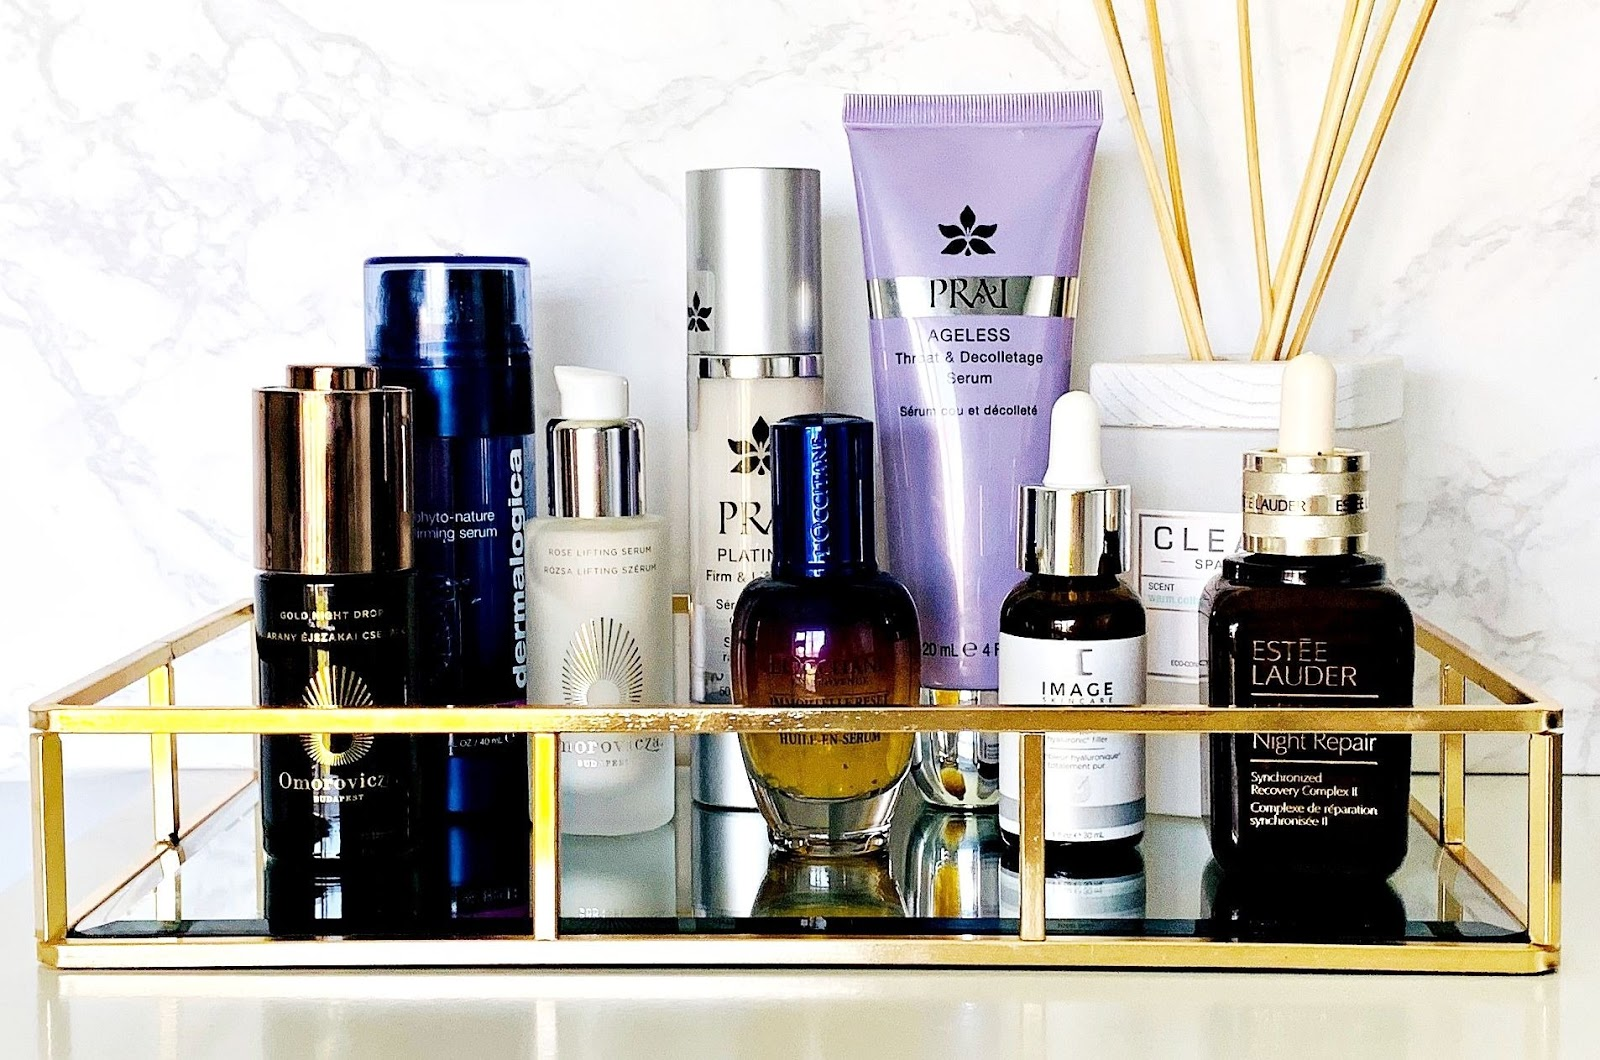 The best firming serums